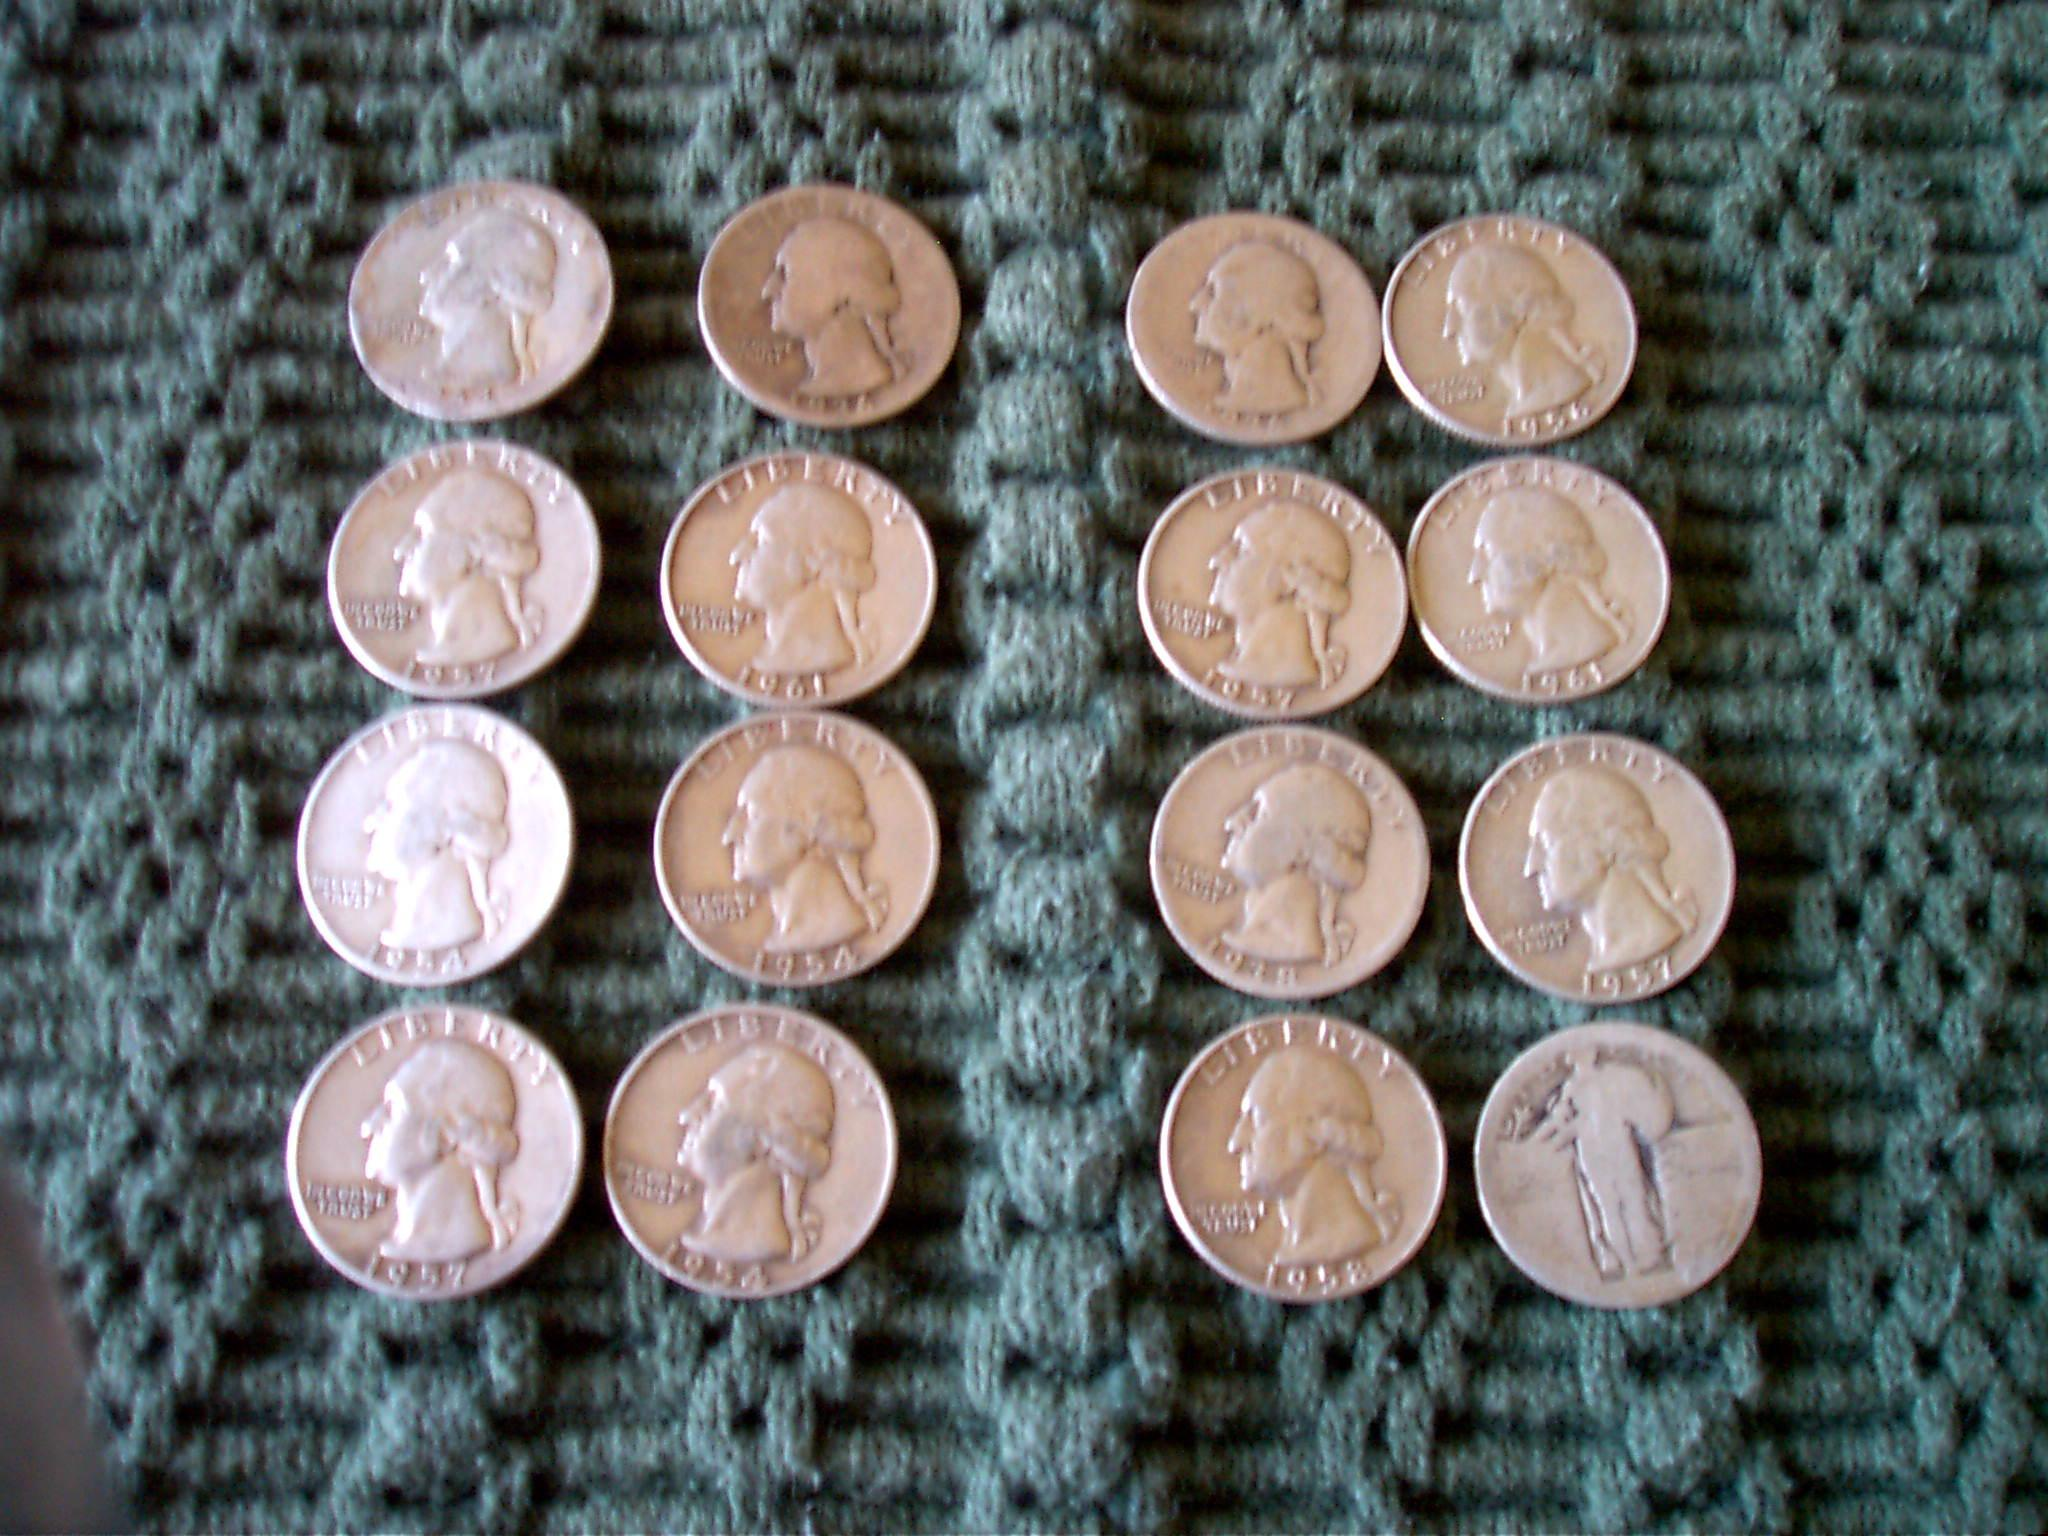 ace-250-16-silver-coins-1